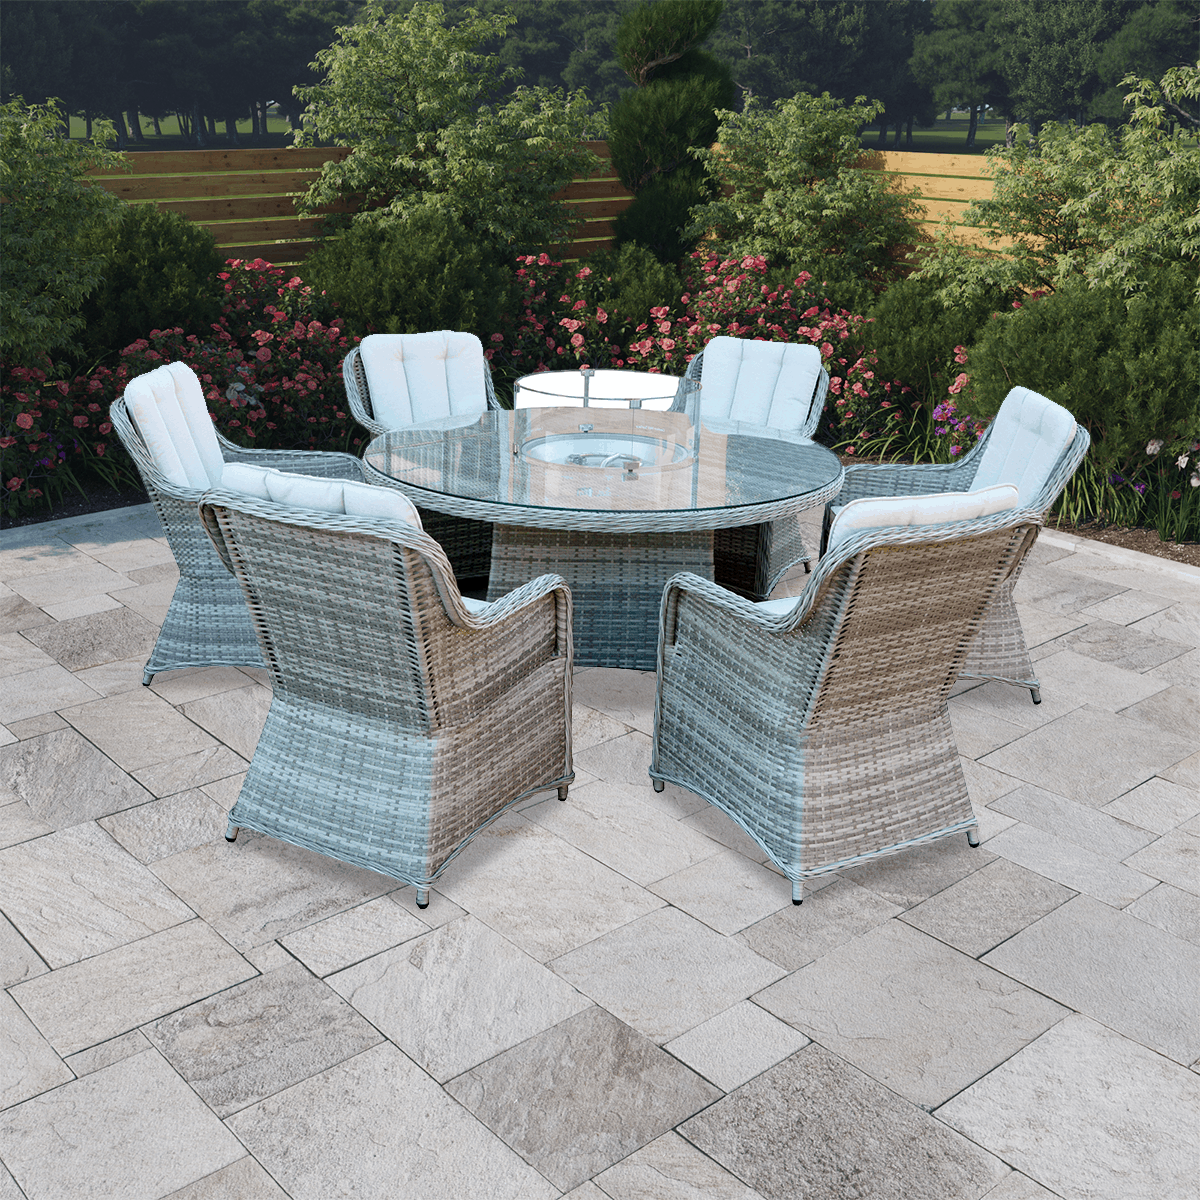 BillyOh Parma 6 Seater Round Outdoor Rattan Garden Dining Set with Firepit Table